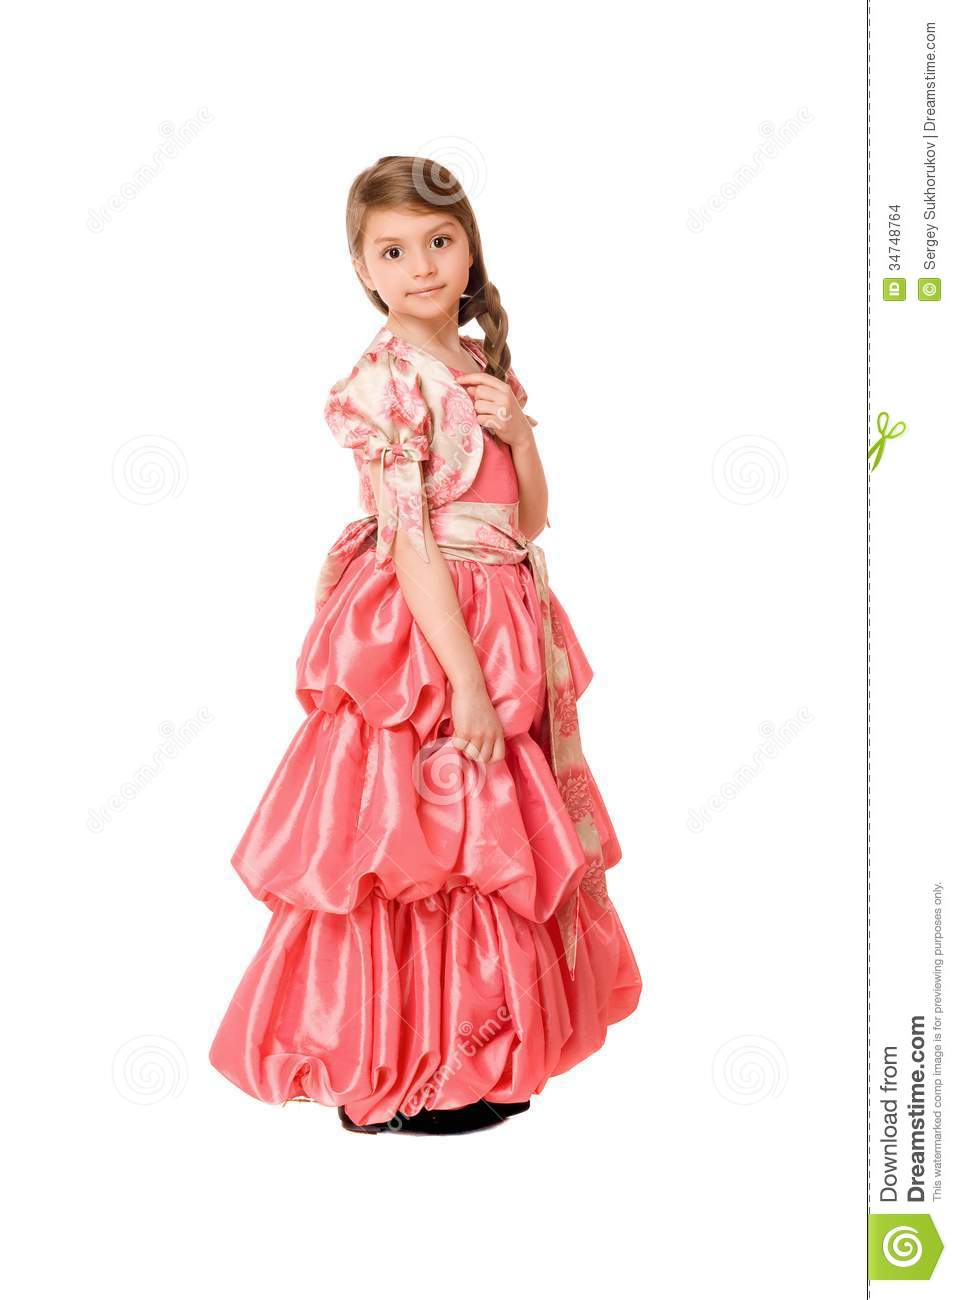 Lovely Little Girl In A Long Dress Stock Images - Image: 34748764